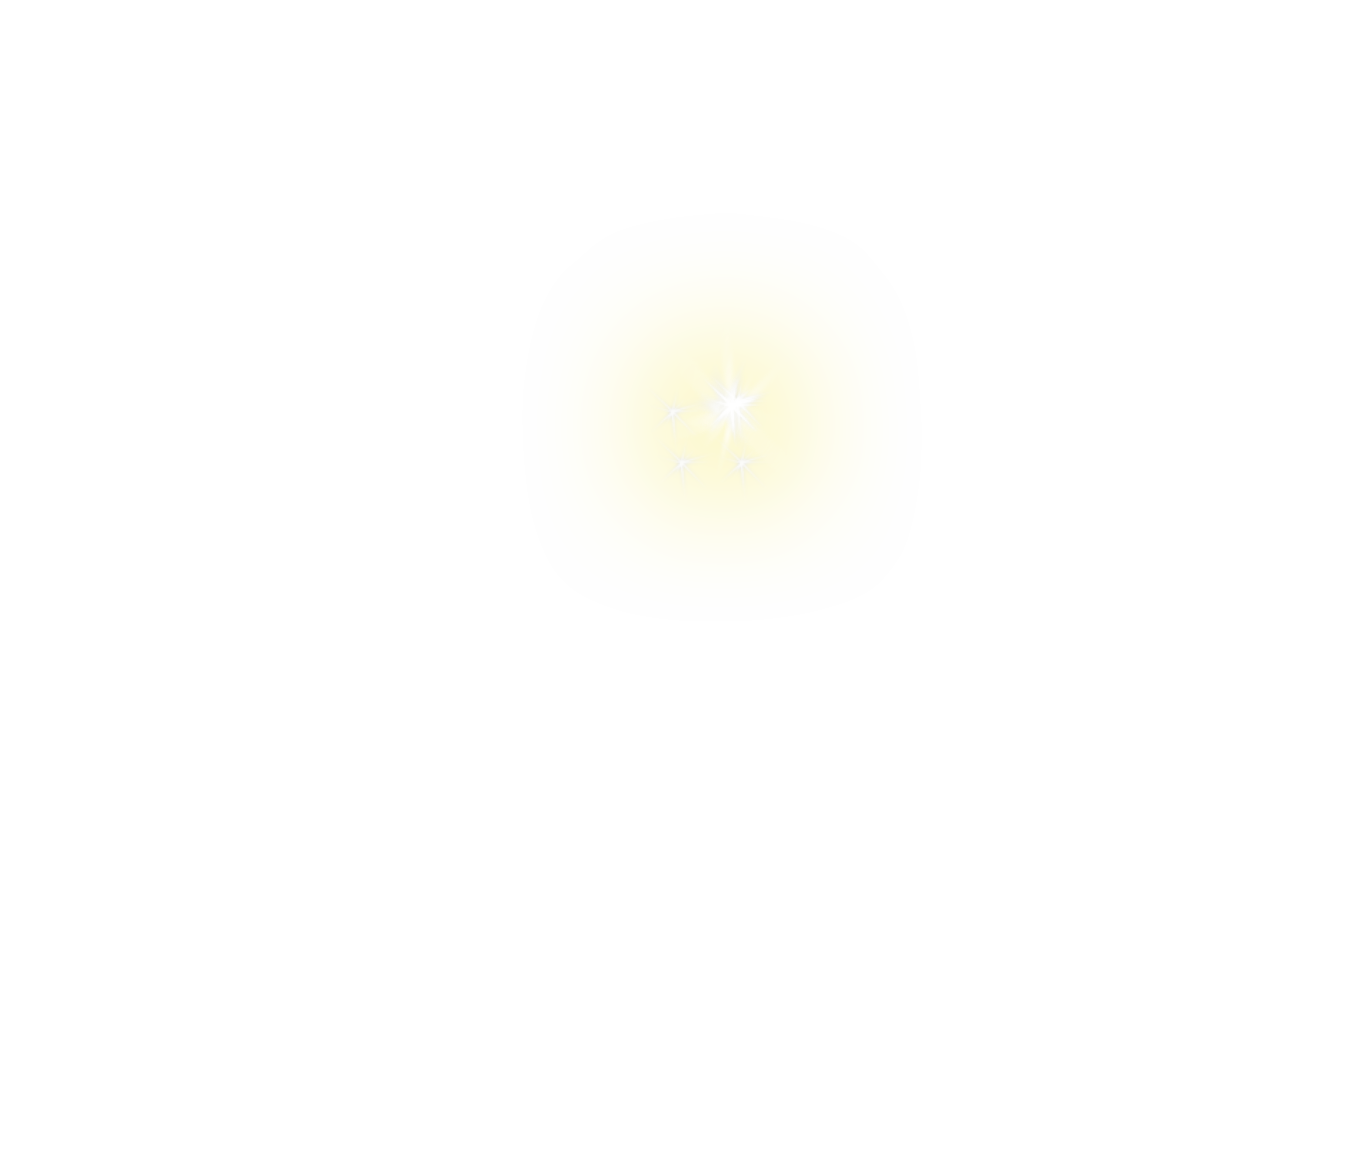 sparkle png yellow